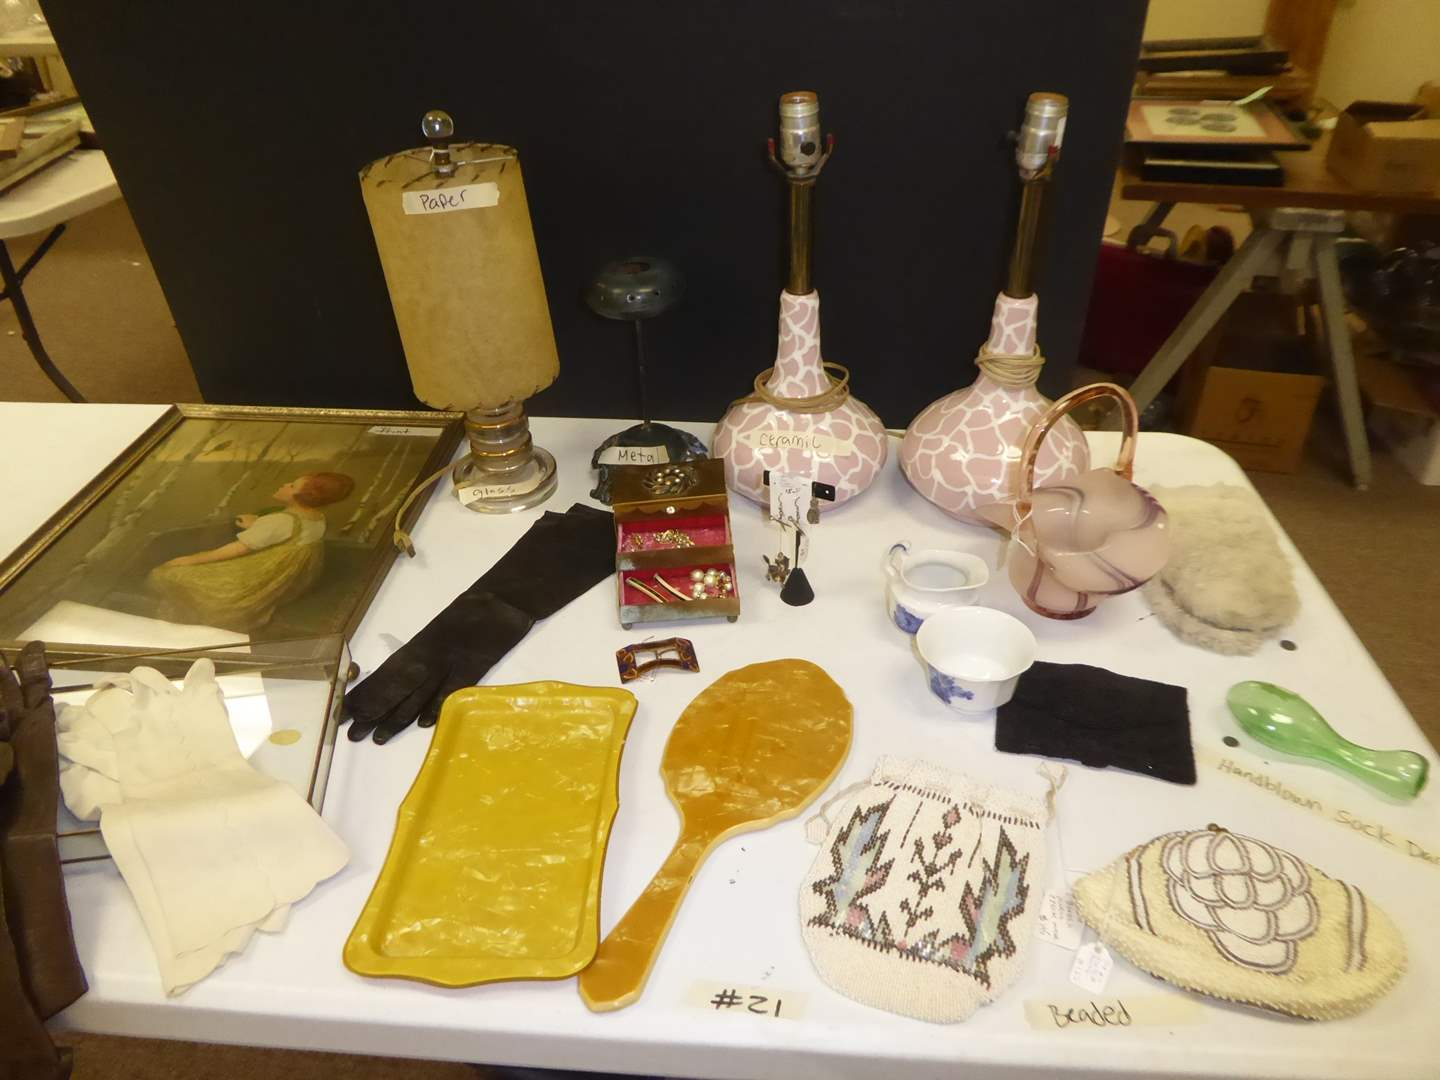 Lot # 21 - Ceramic Lamps, Vintage Beaded Purses & Costume Jewelry  (main image)